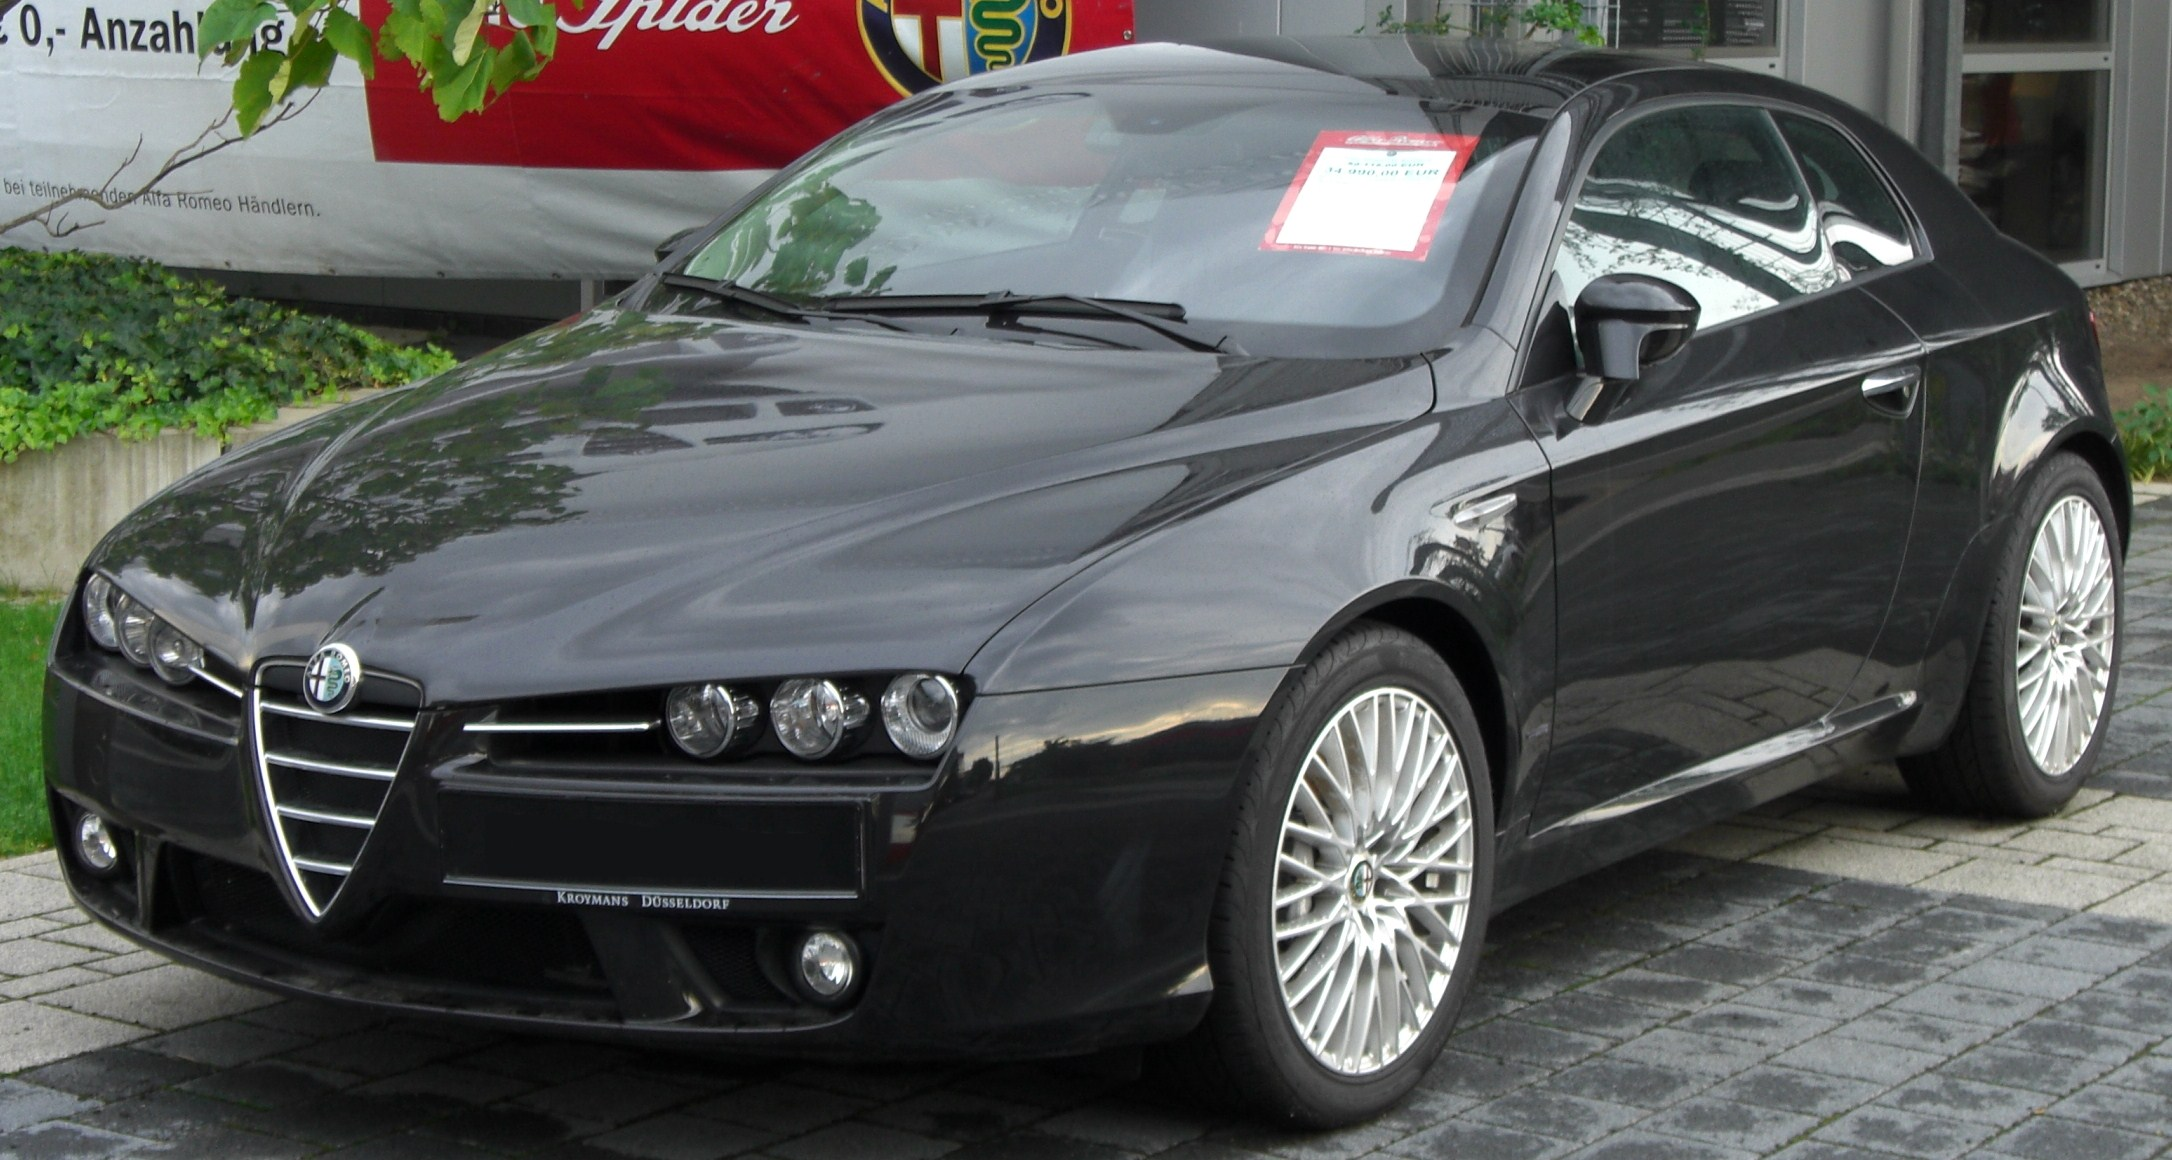 Alfa-Romeo Brera photo 09